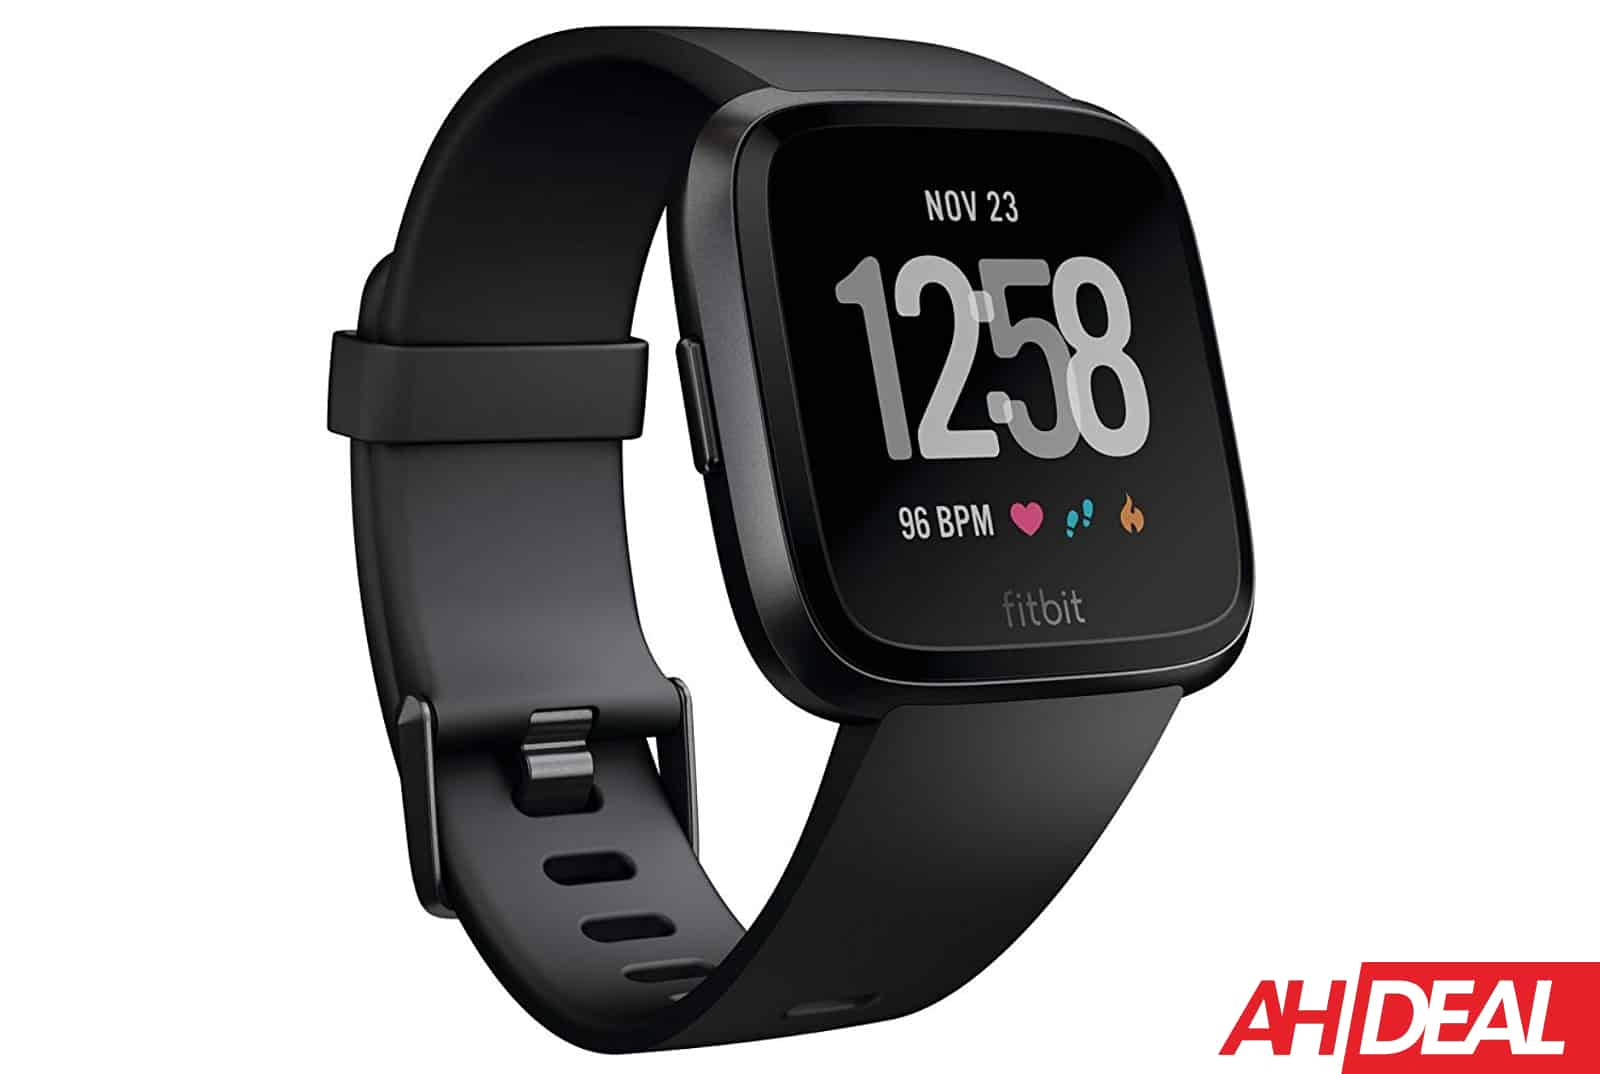 At 149 The Fitbit Versa Smartwatch Is A Bargain Amazon Cyber Monday 2018 Deals